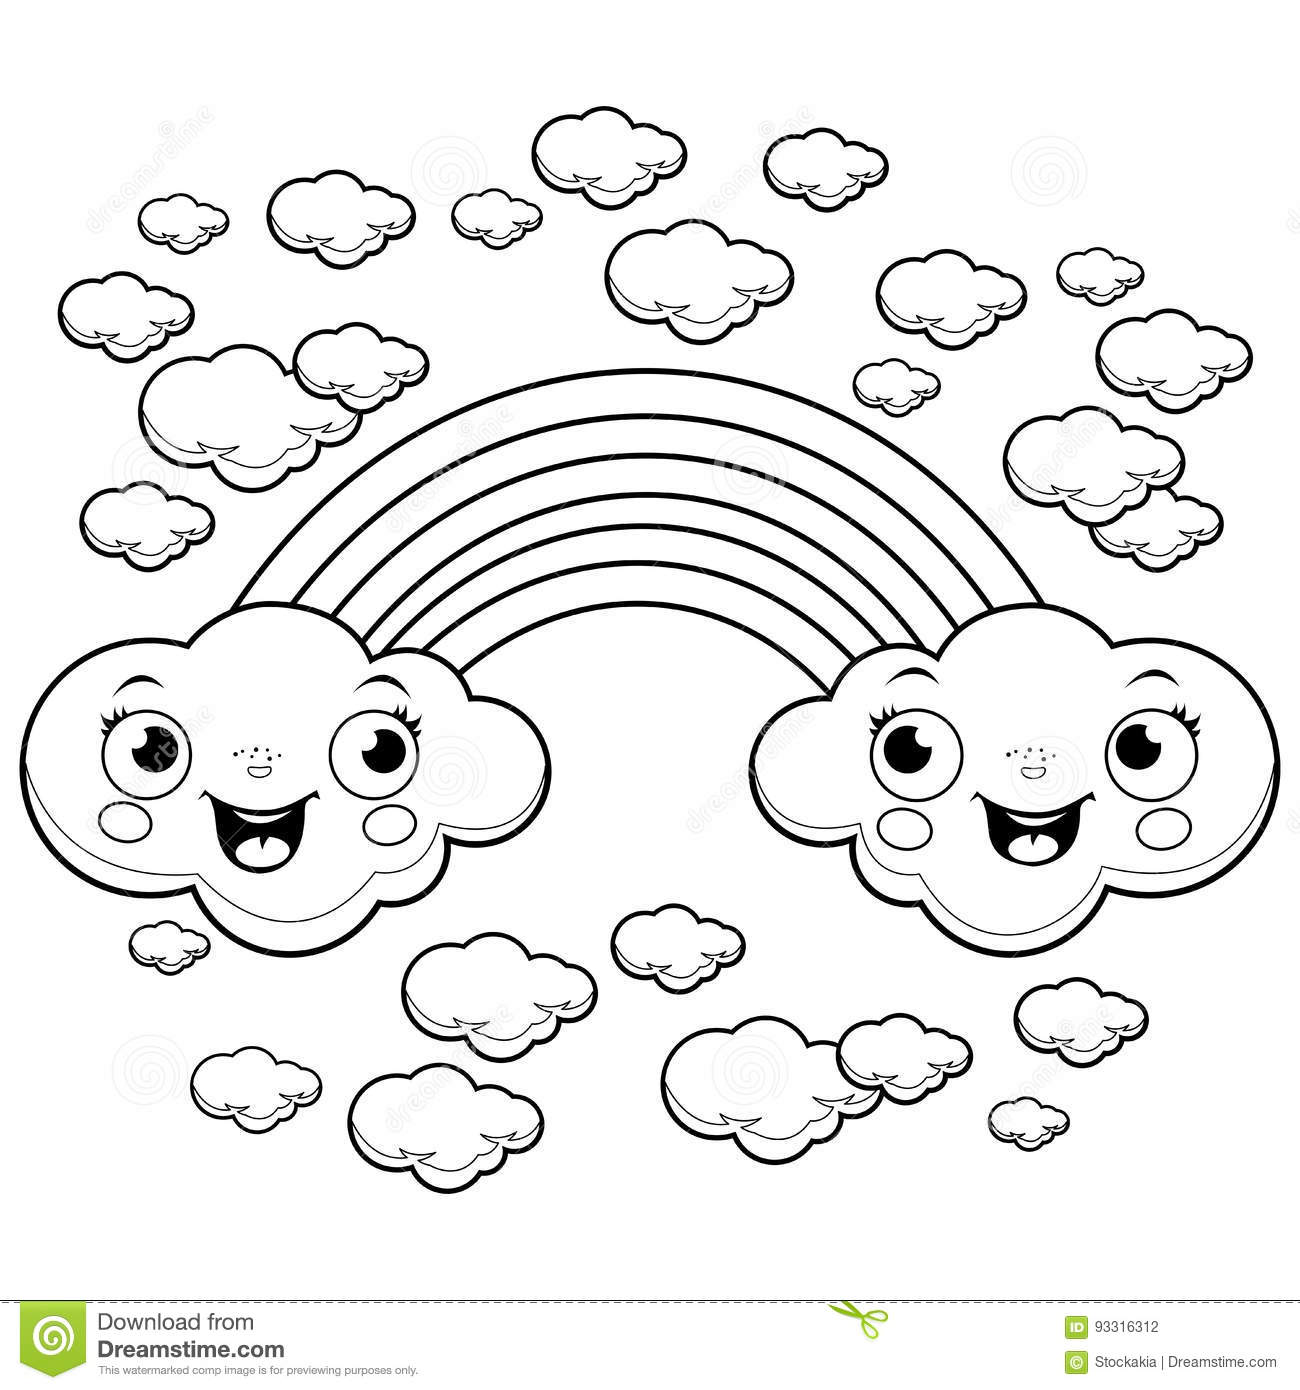 Rainbow Cloud Characters Coloring Page Stock Vector